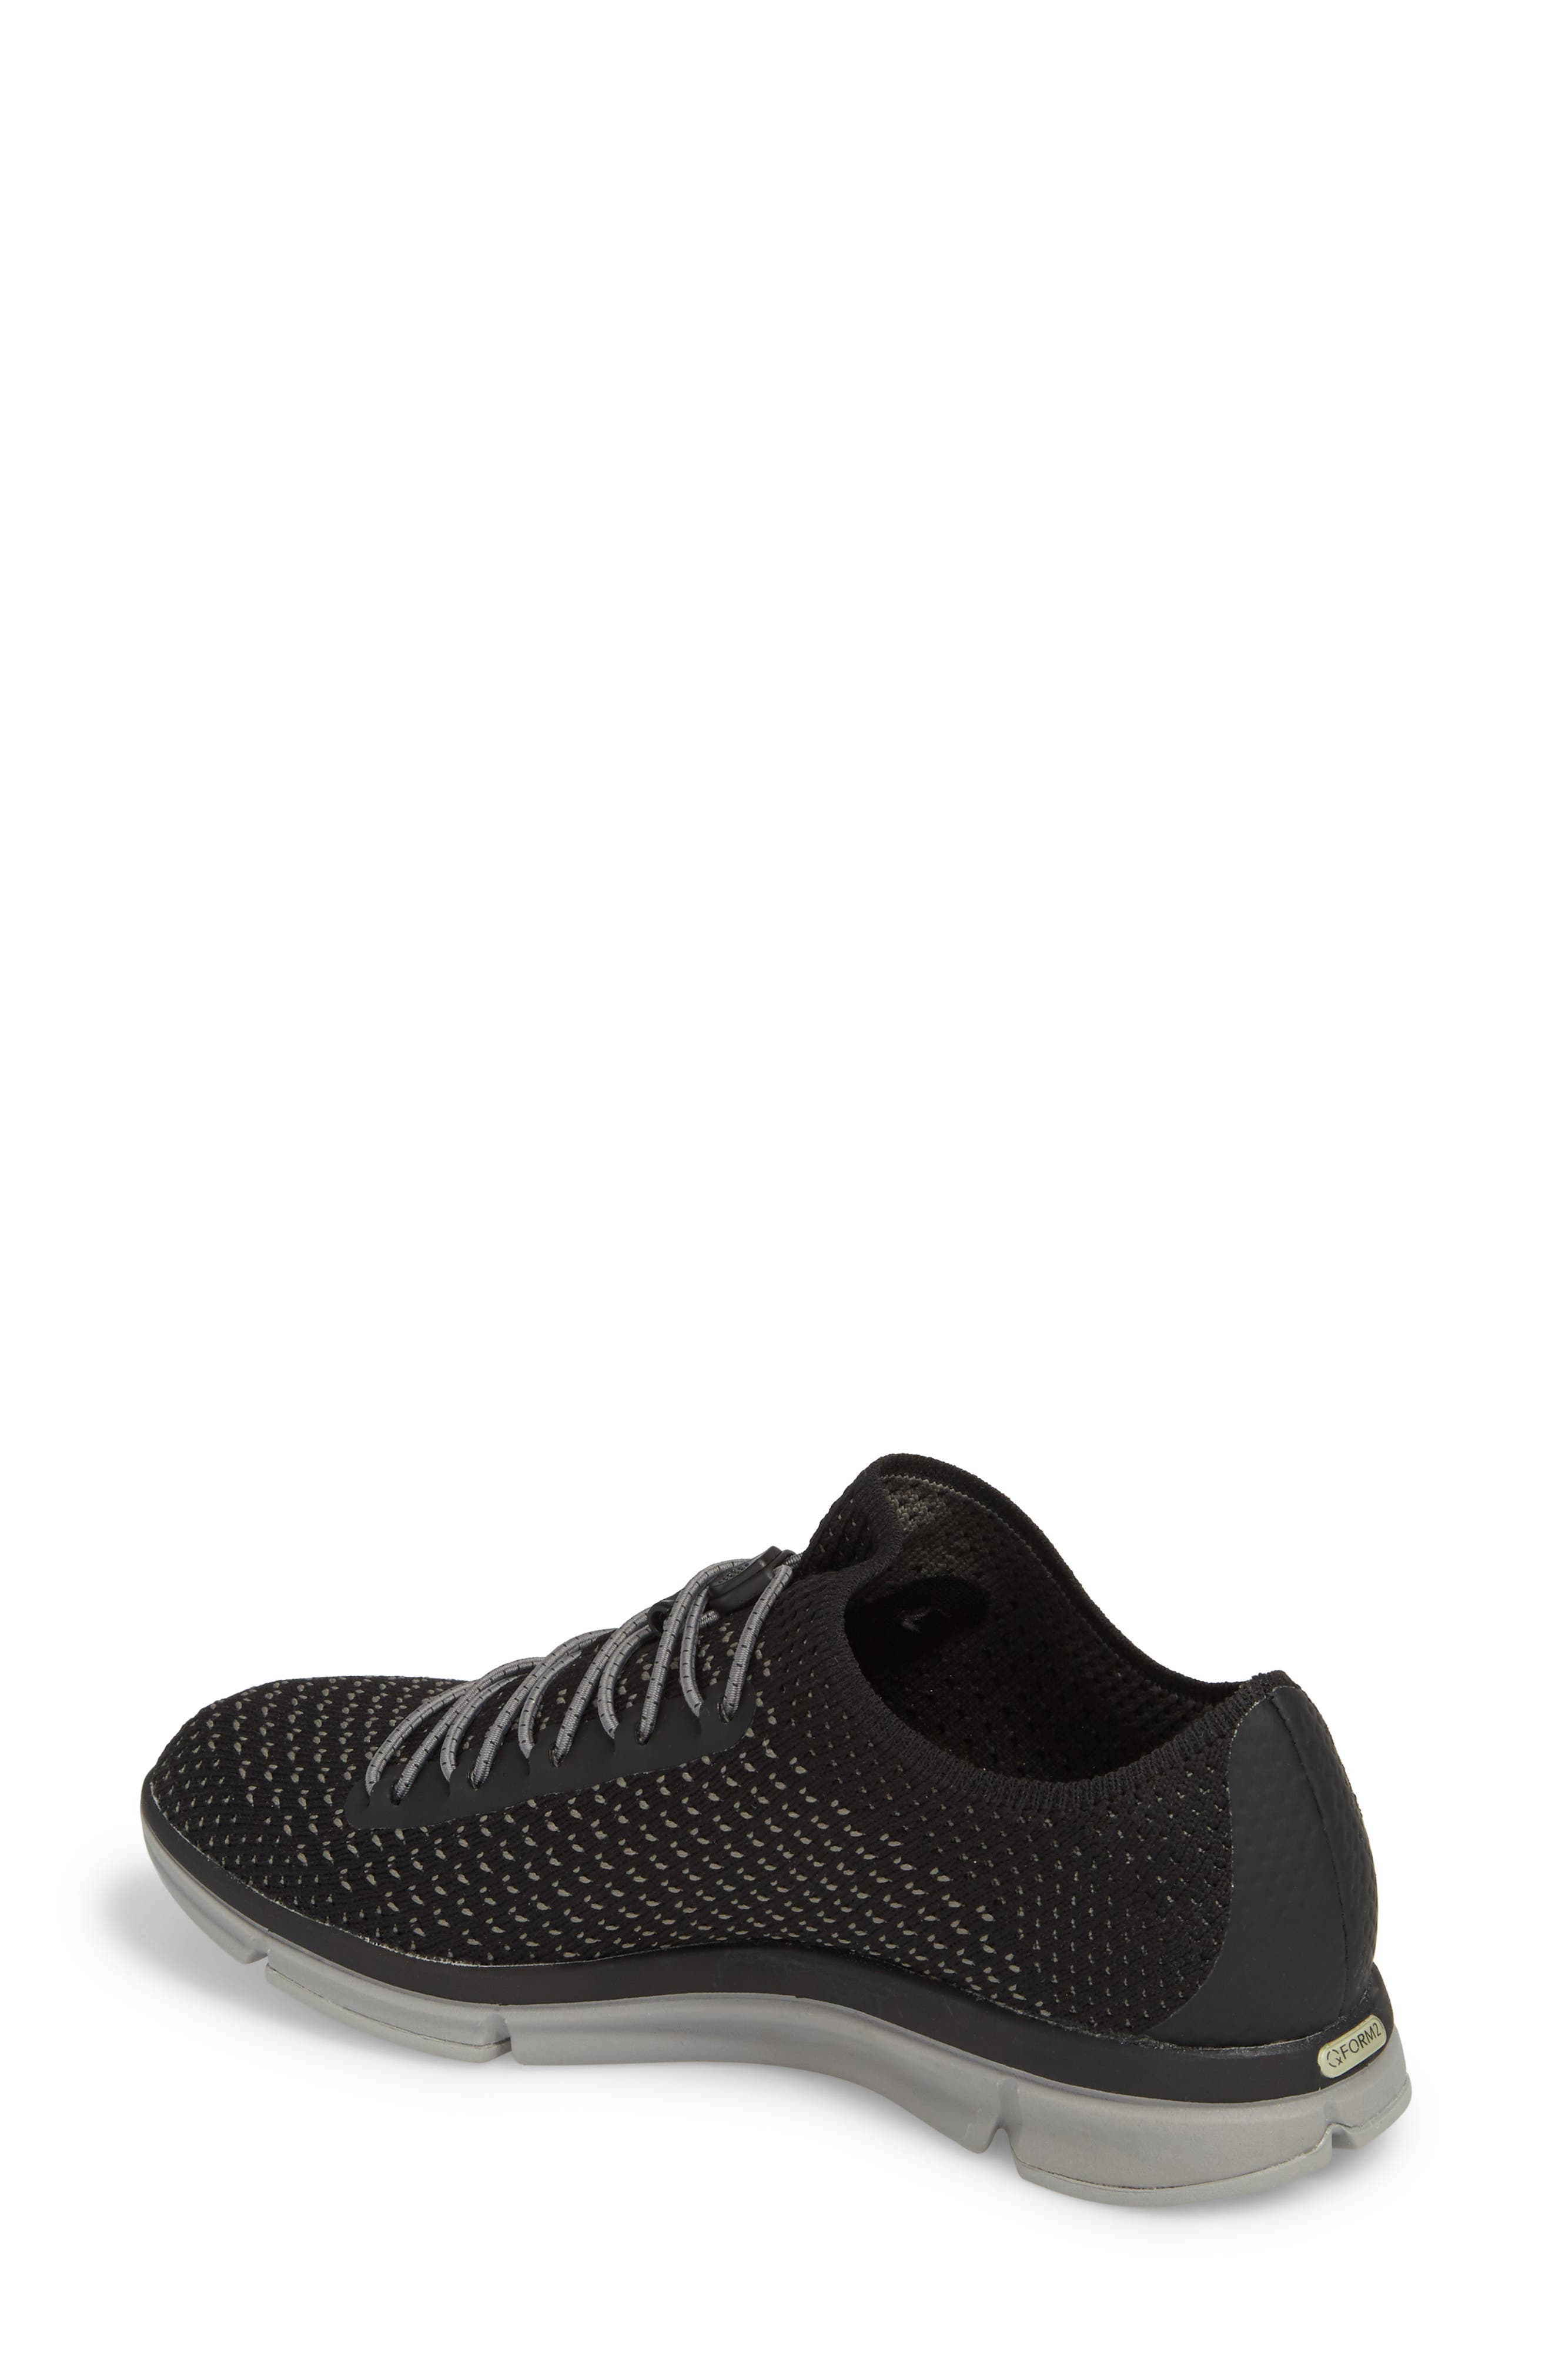 Zoe Sojourn Lace Knit Sneaker,                             Alternate thumbnail 2, color,                             001